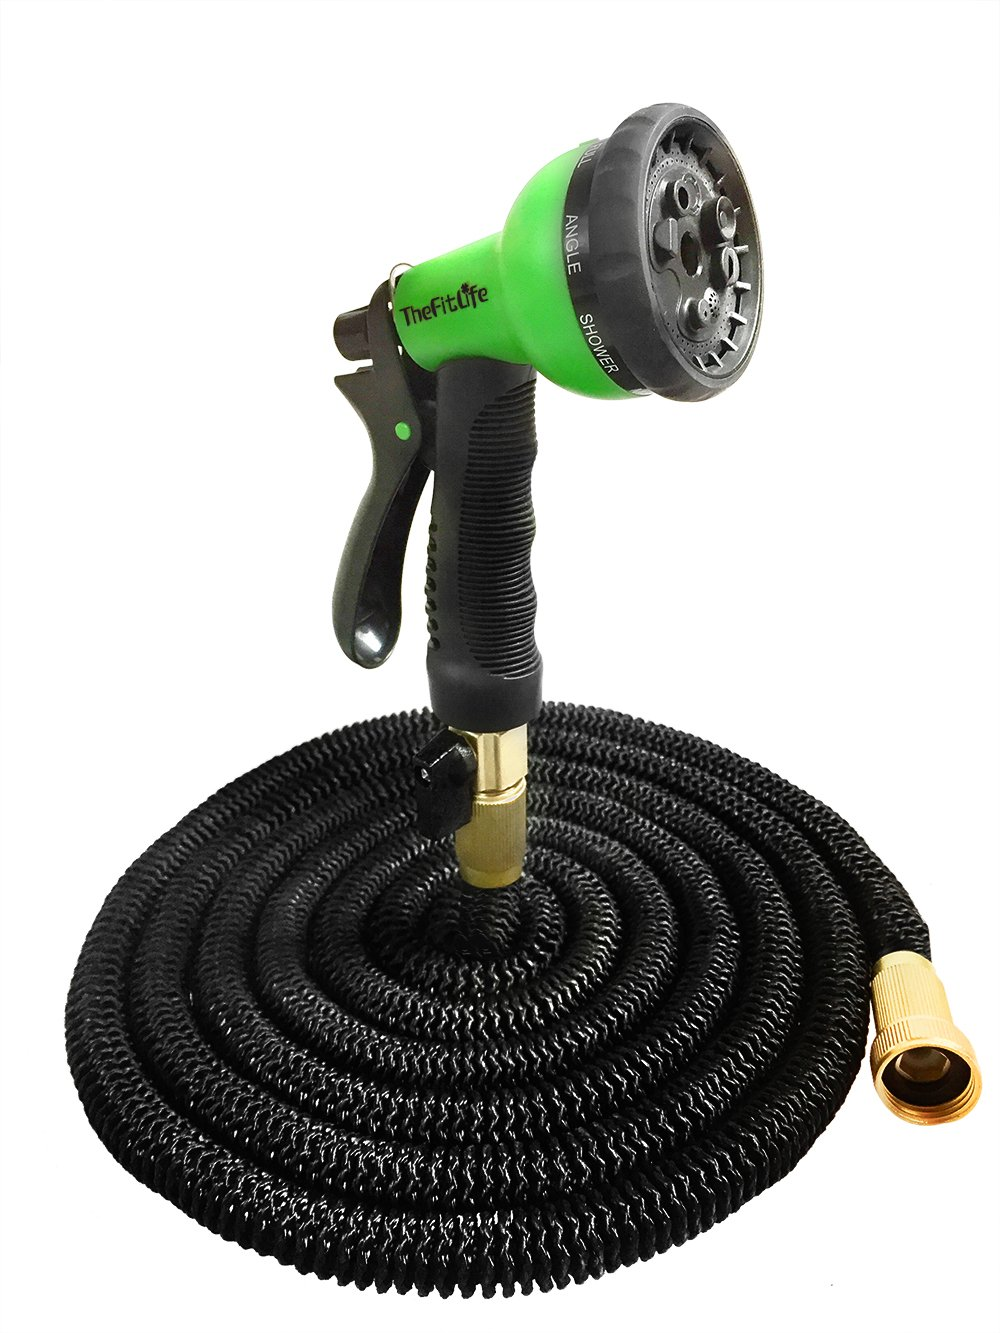 TheFitLife Flexible & Expandable Garden Hose - 25/50/75/100 Ft With Strongest Triple Core Latex & Solid Brass Fittings Free Spray Nozzle 3/4 USA Standard Kink Free Easy Storage Water Hose (25Ft)